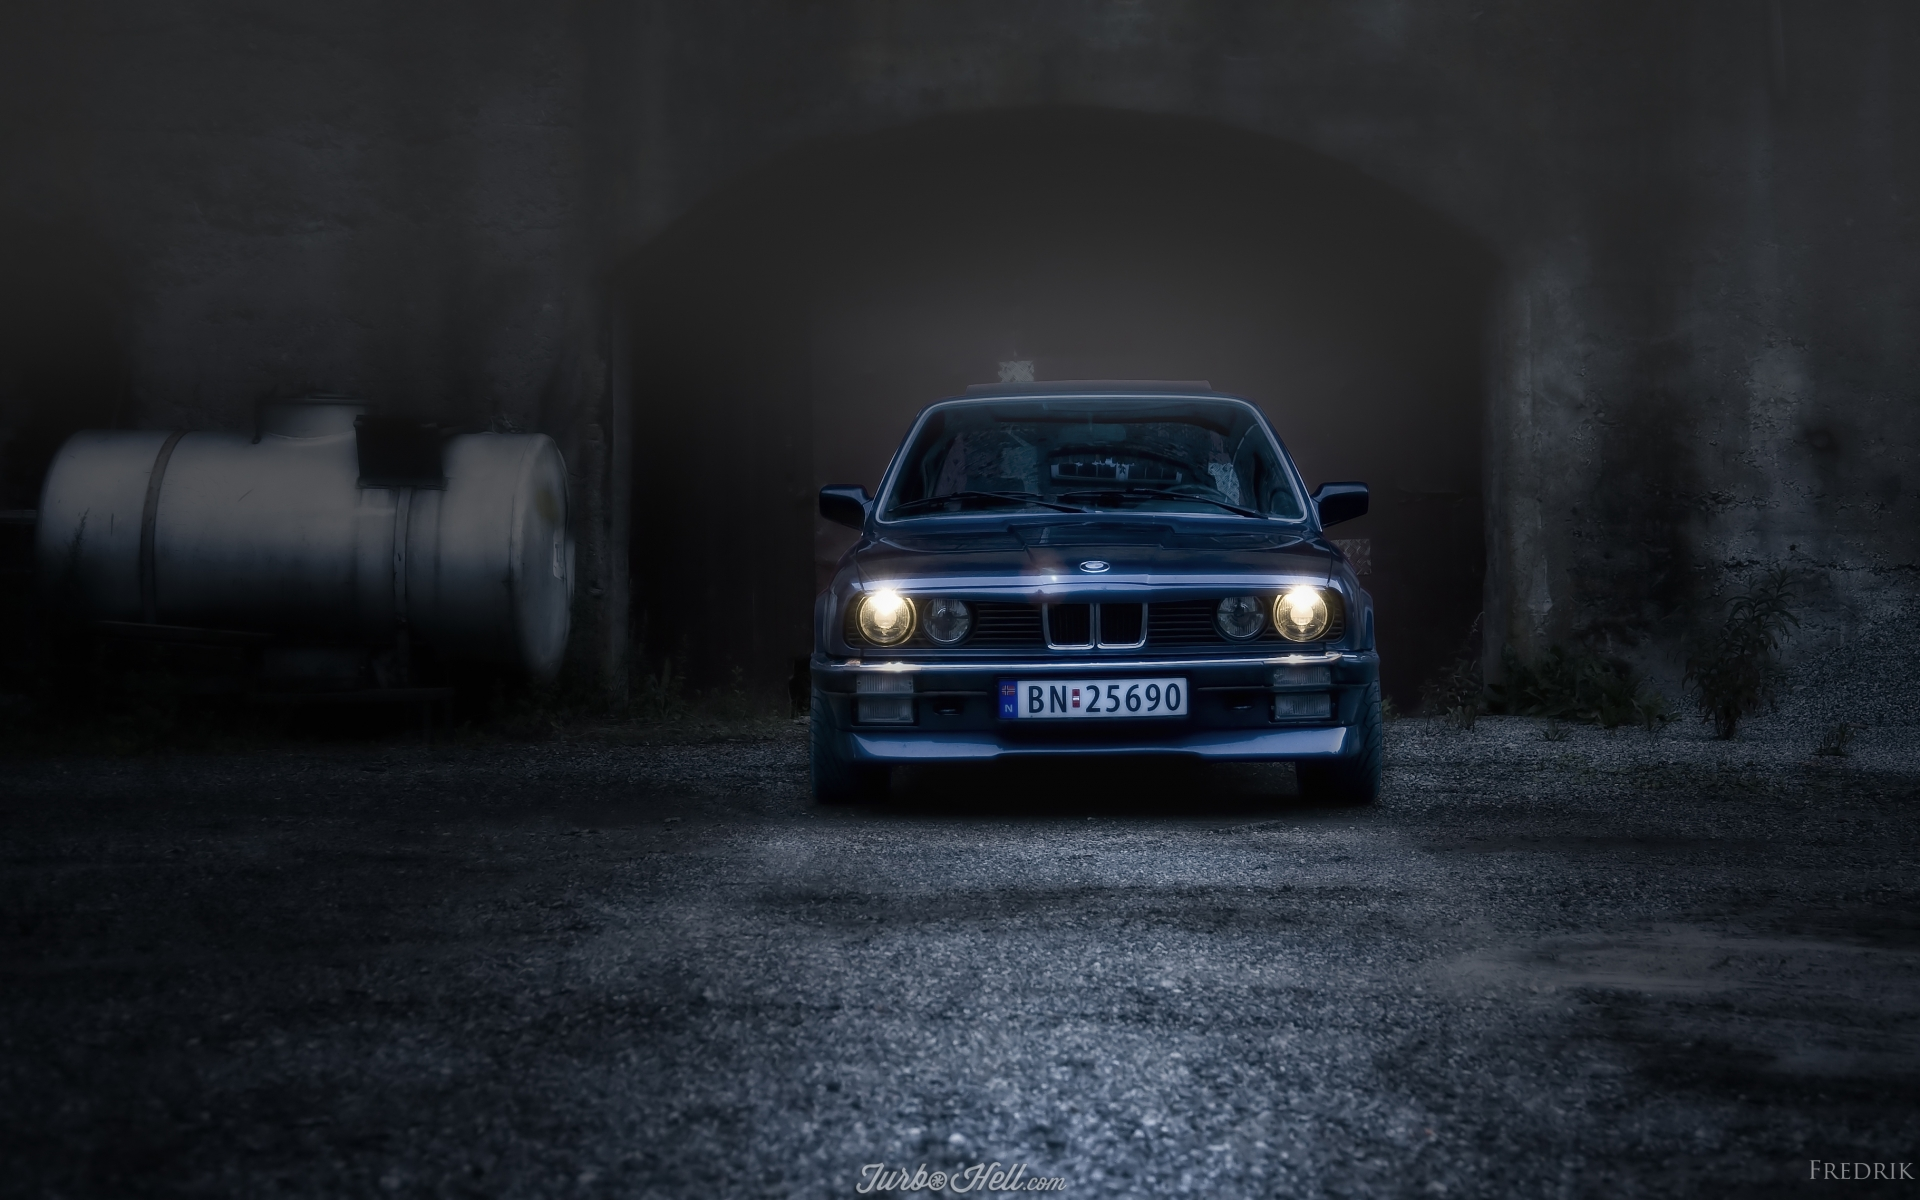 Bmw Sports Cars Wallpapers Desktop Backgrounds Bmw E30 Wallpapers Archives Page 2 Of 2 Hd Desktop